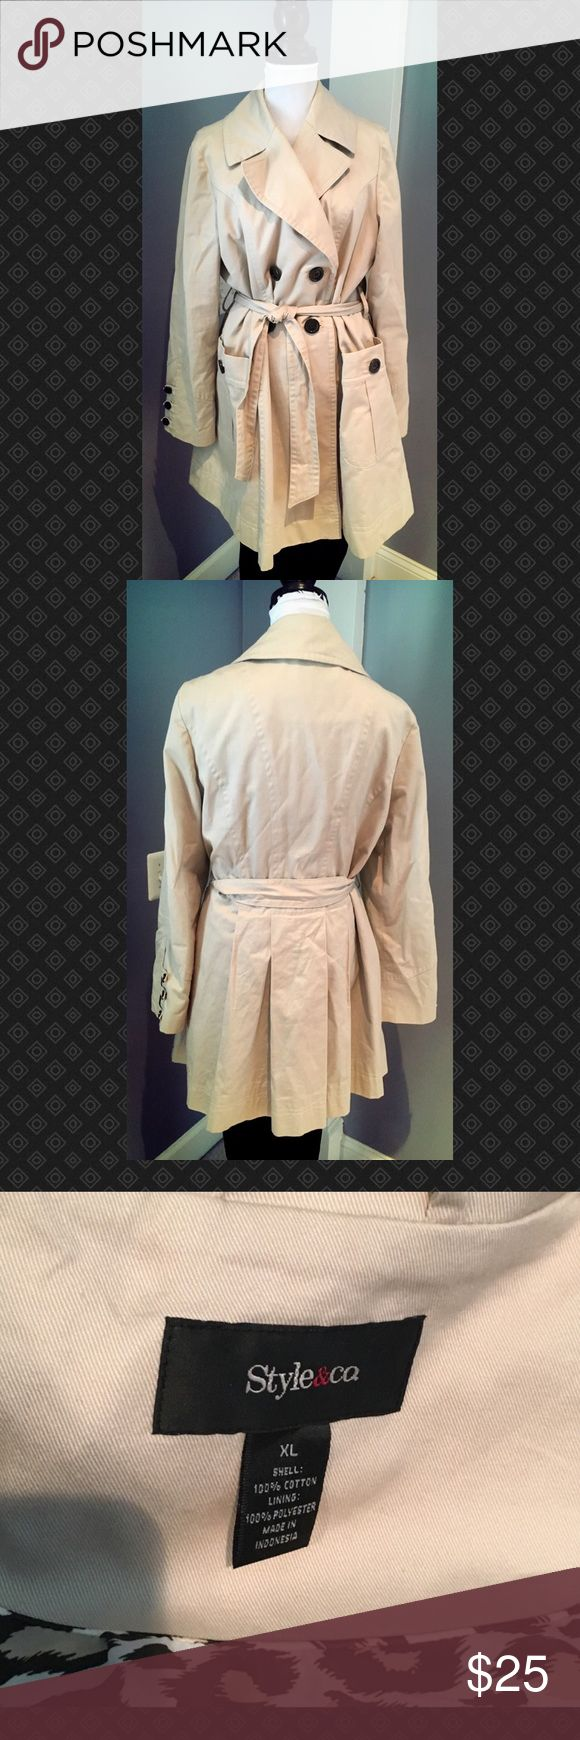 Cream Double Breasted Trench Coat Cream Double Breasted Trench Coat Style & Co Jackets & Coats Trench Coats